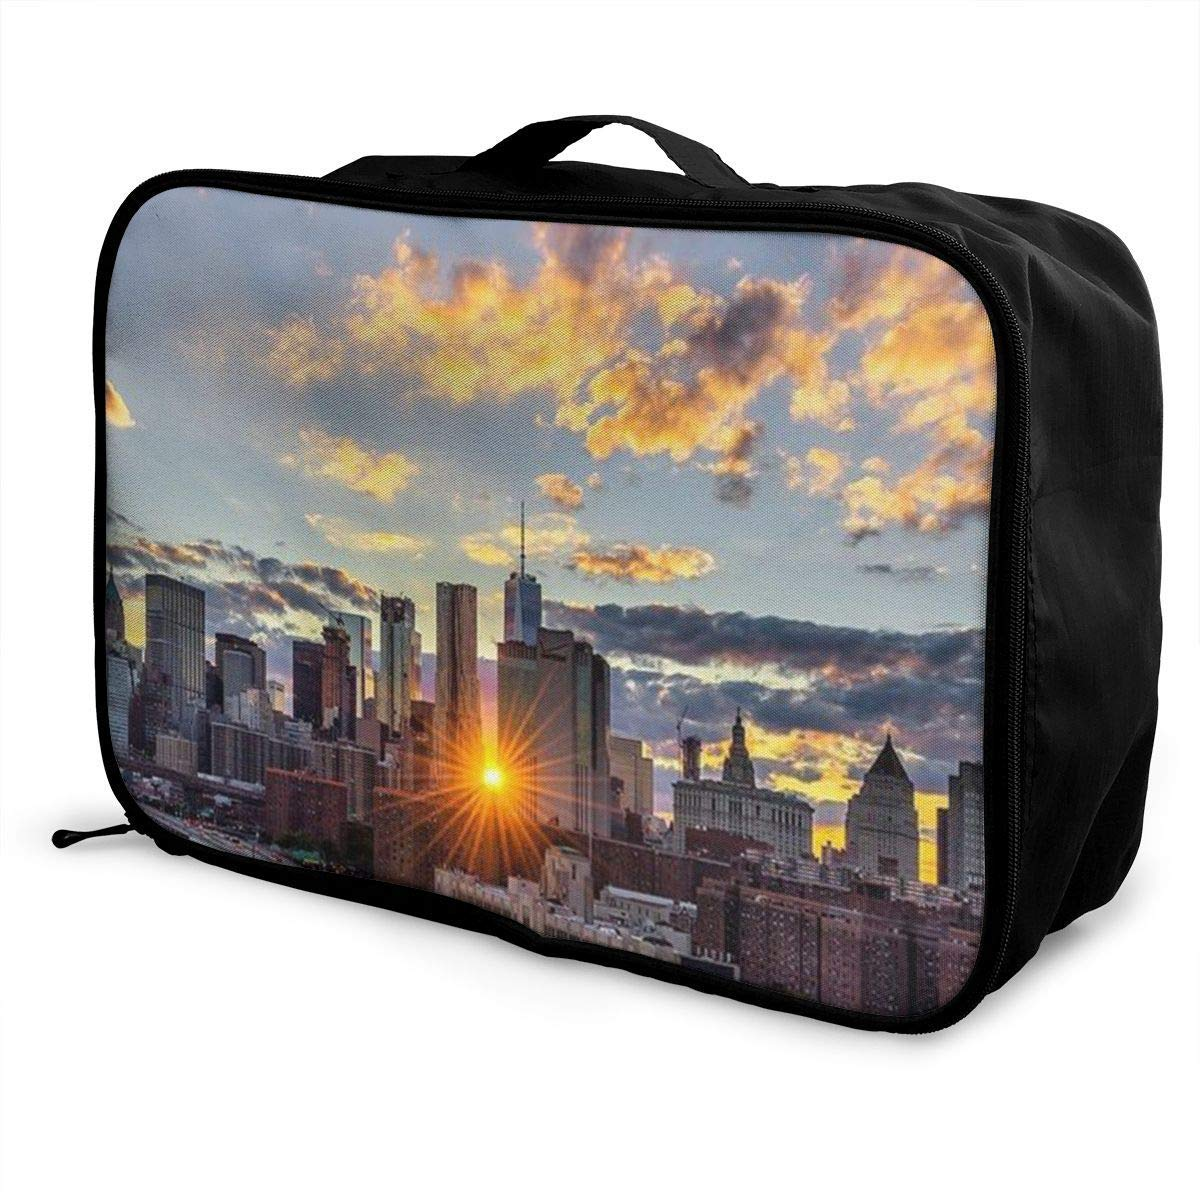 Portable Luggage Duffel Bag Beautiful New York Travel Bags Carry-on In Trolley Handle